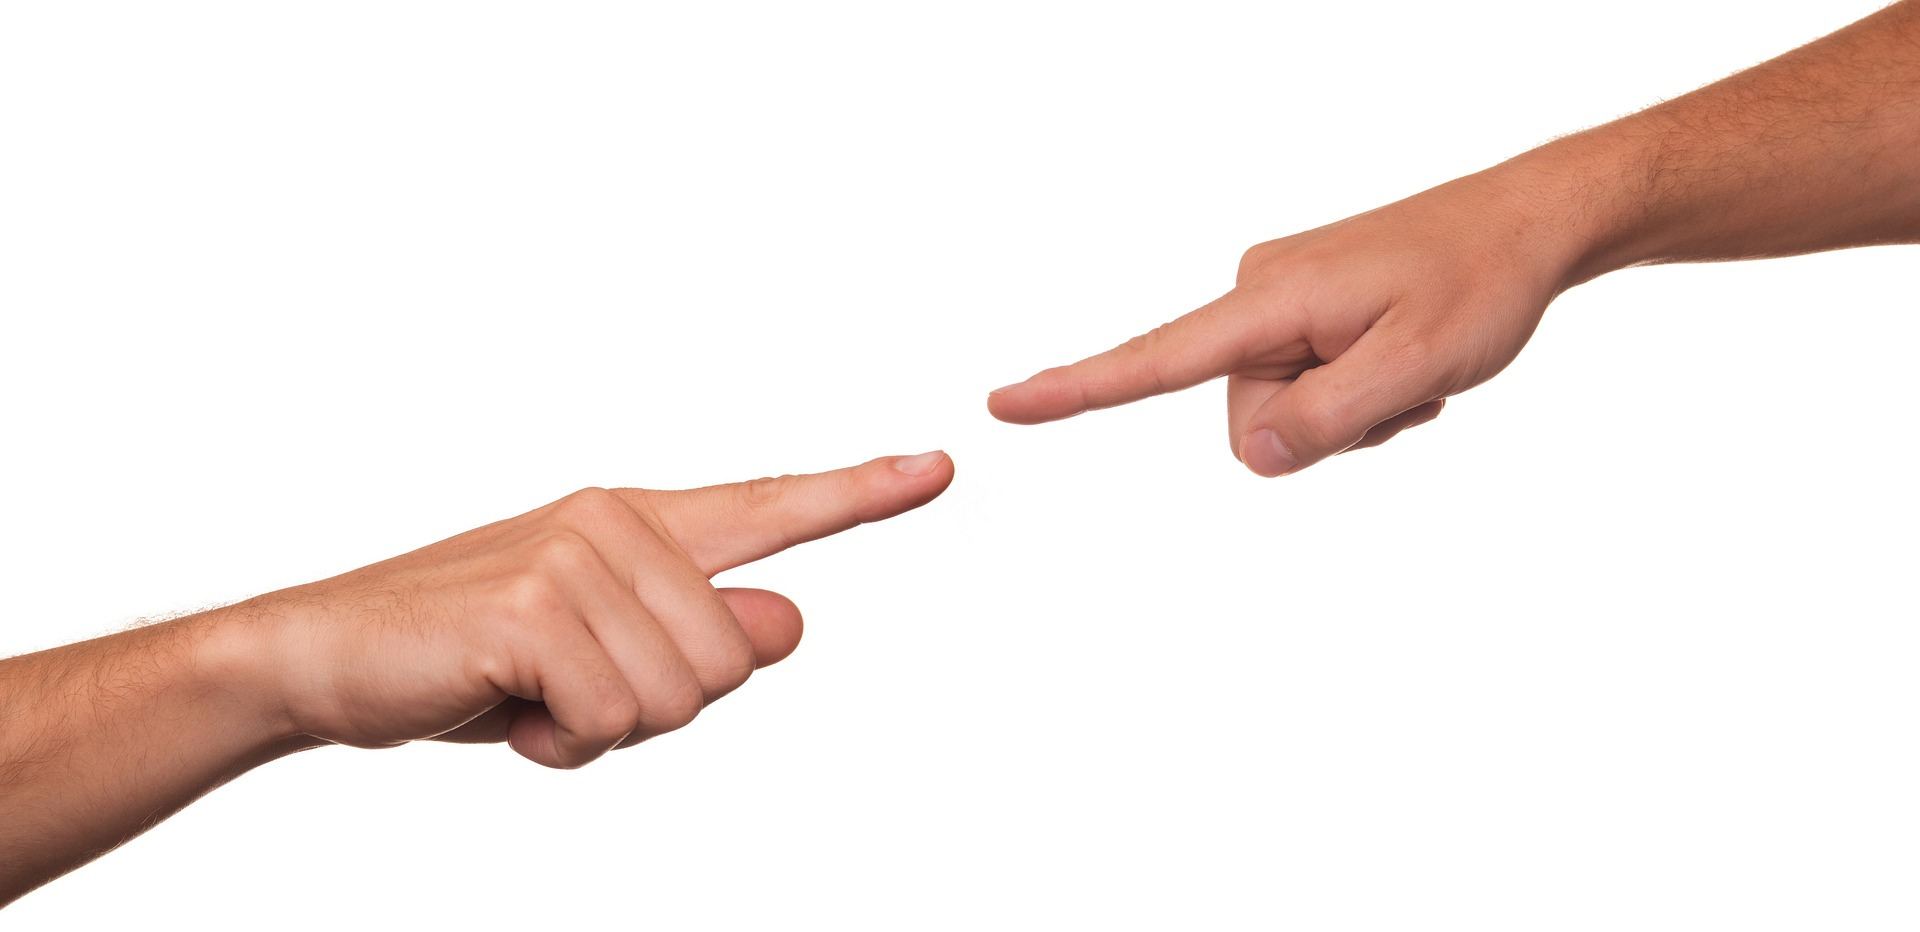 two hands pointing at each other in accusation